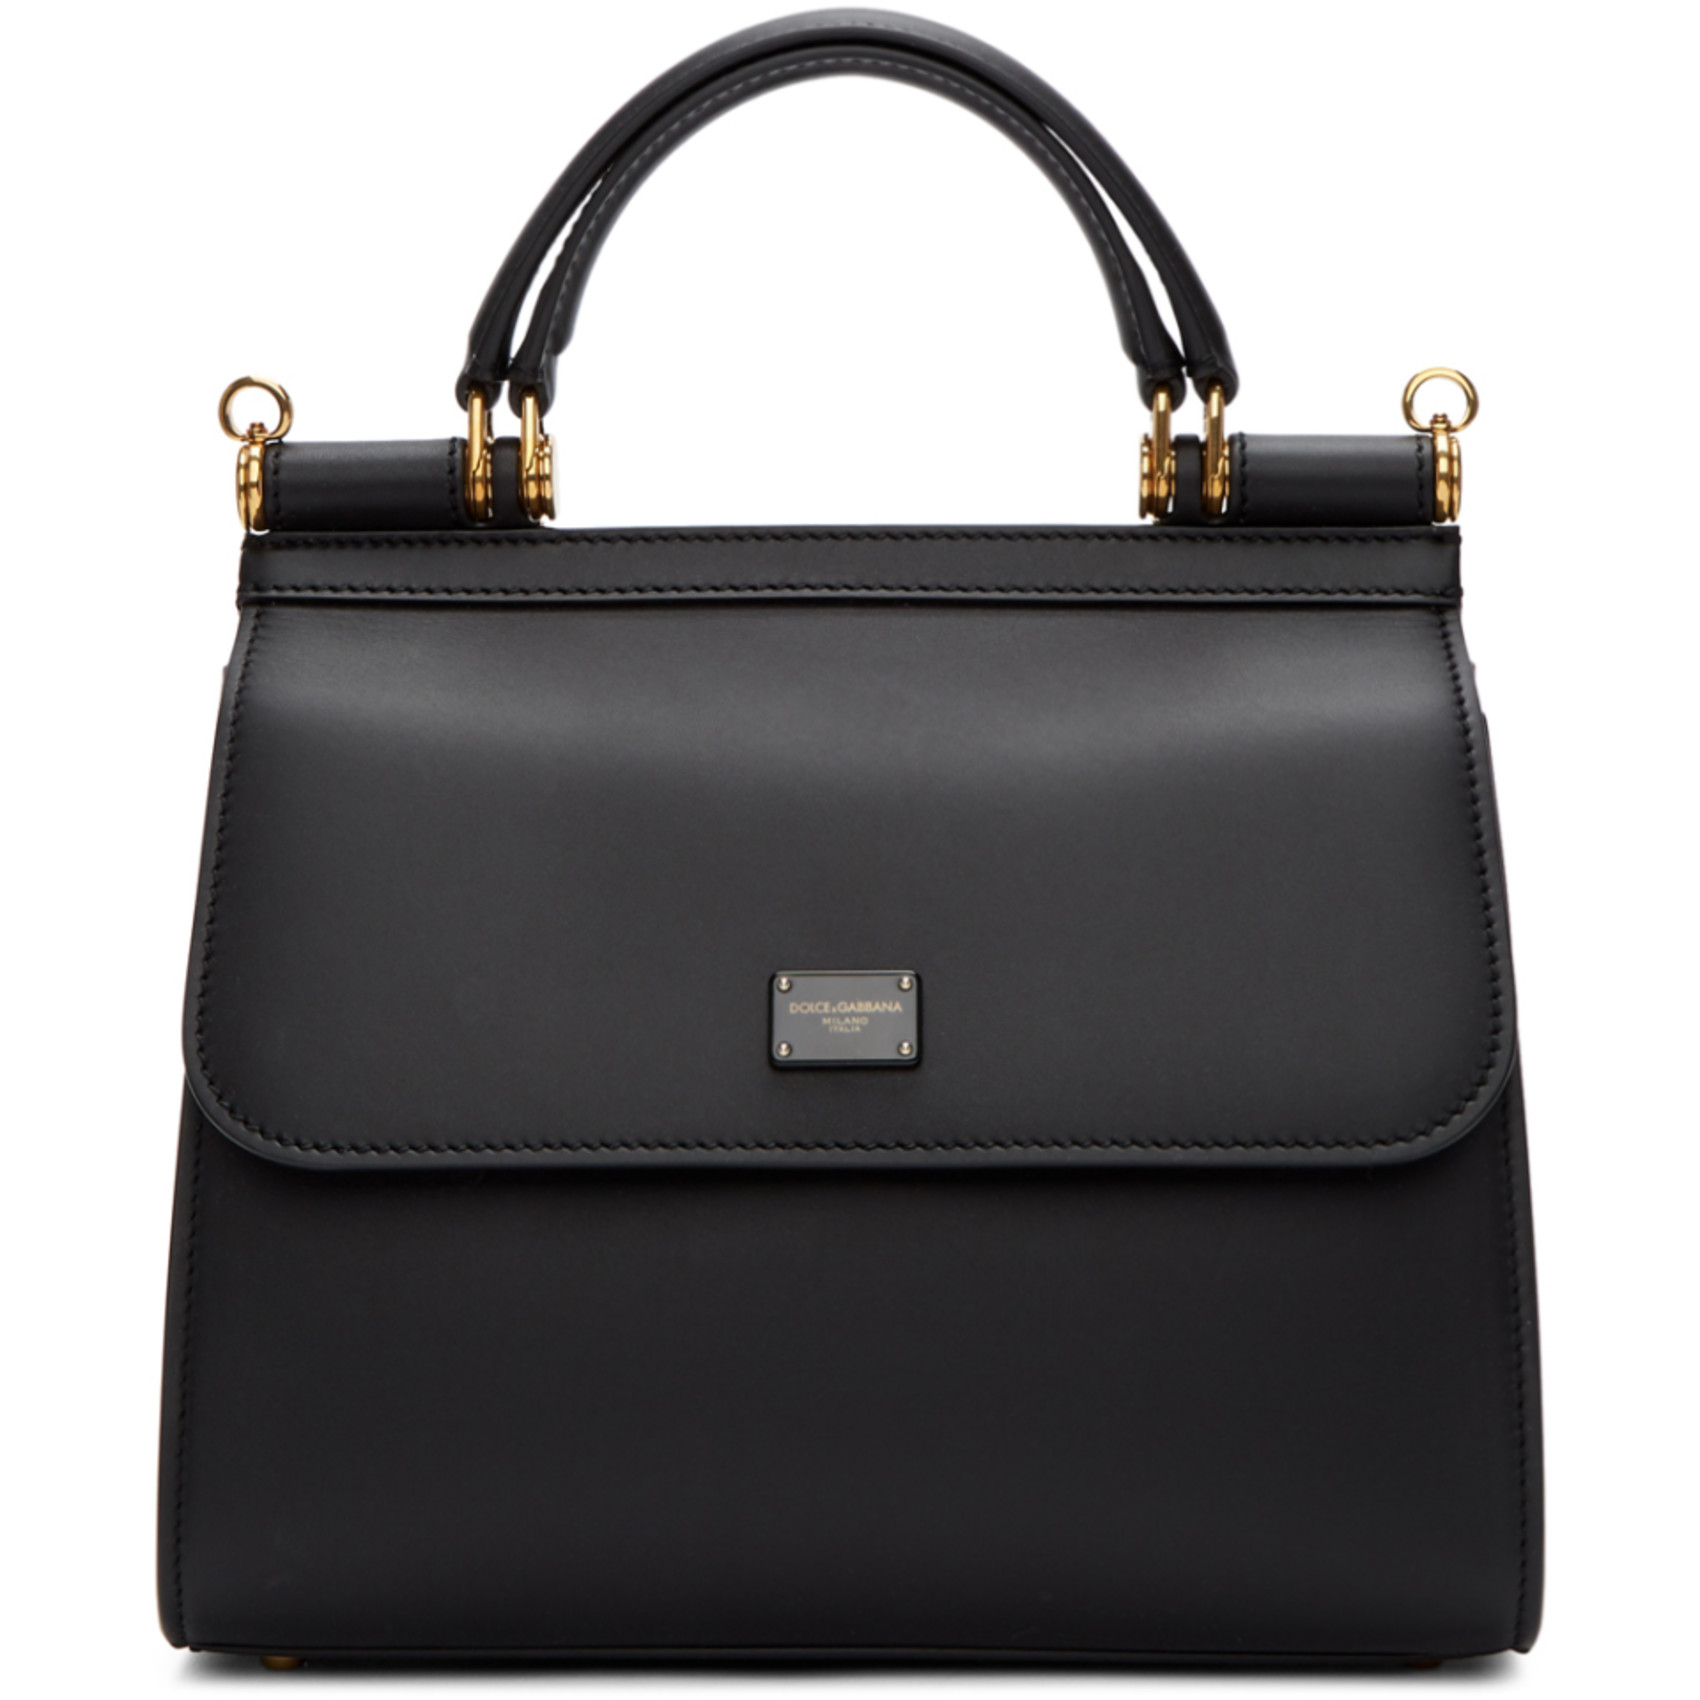 Black Small Sicily 58 Bag by Dolce & Gabbana